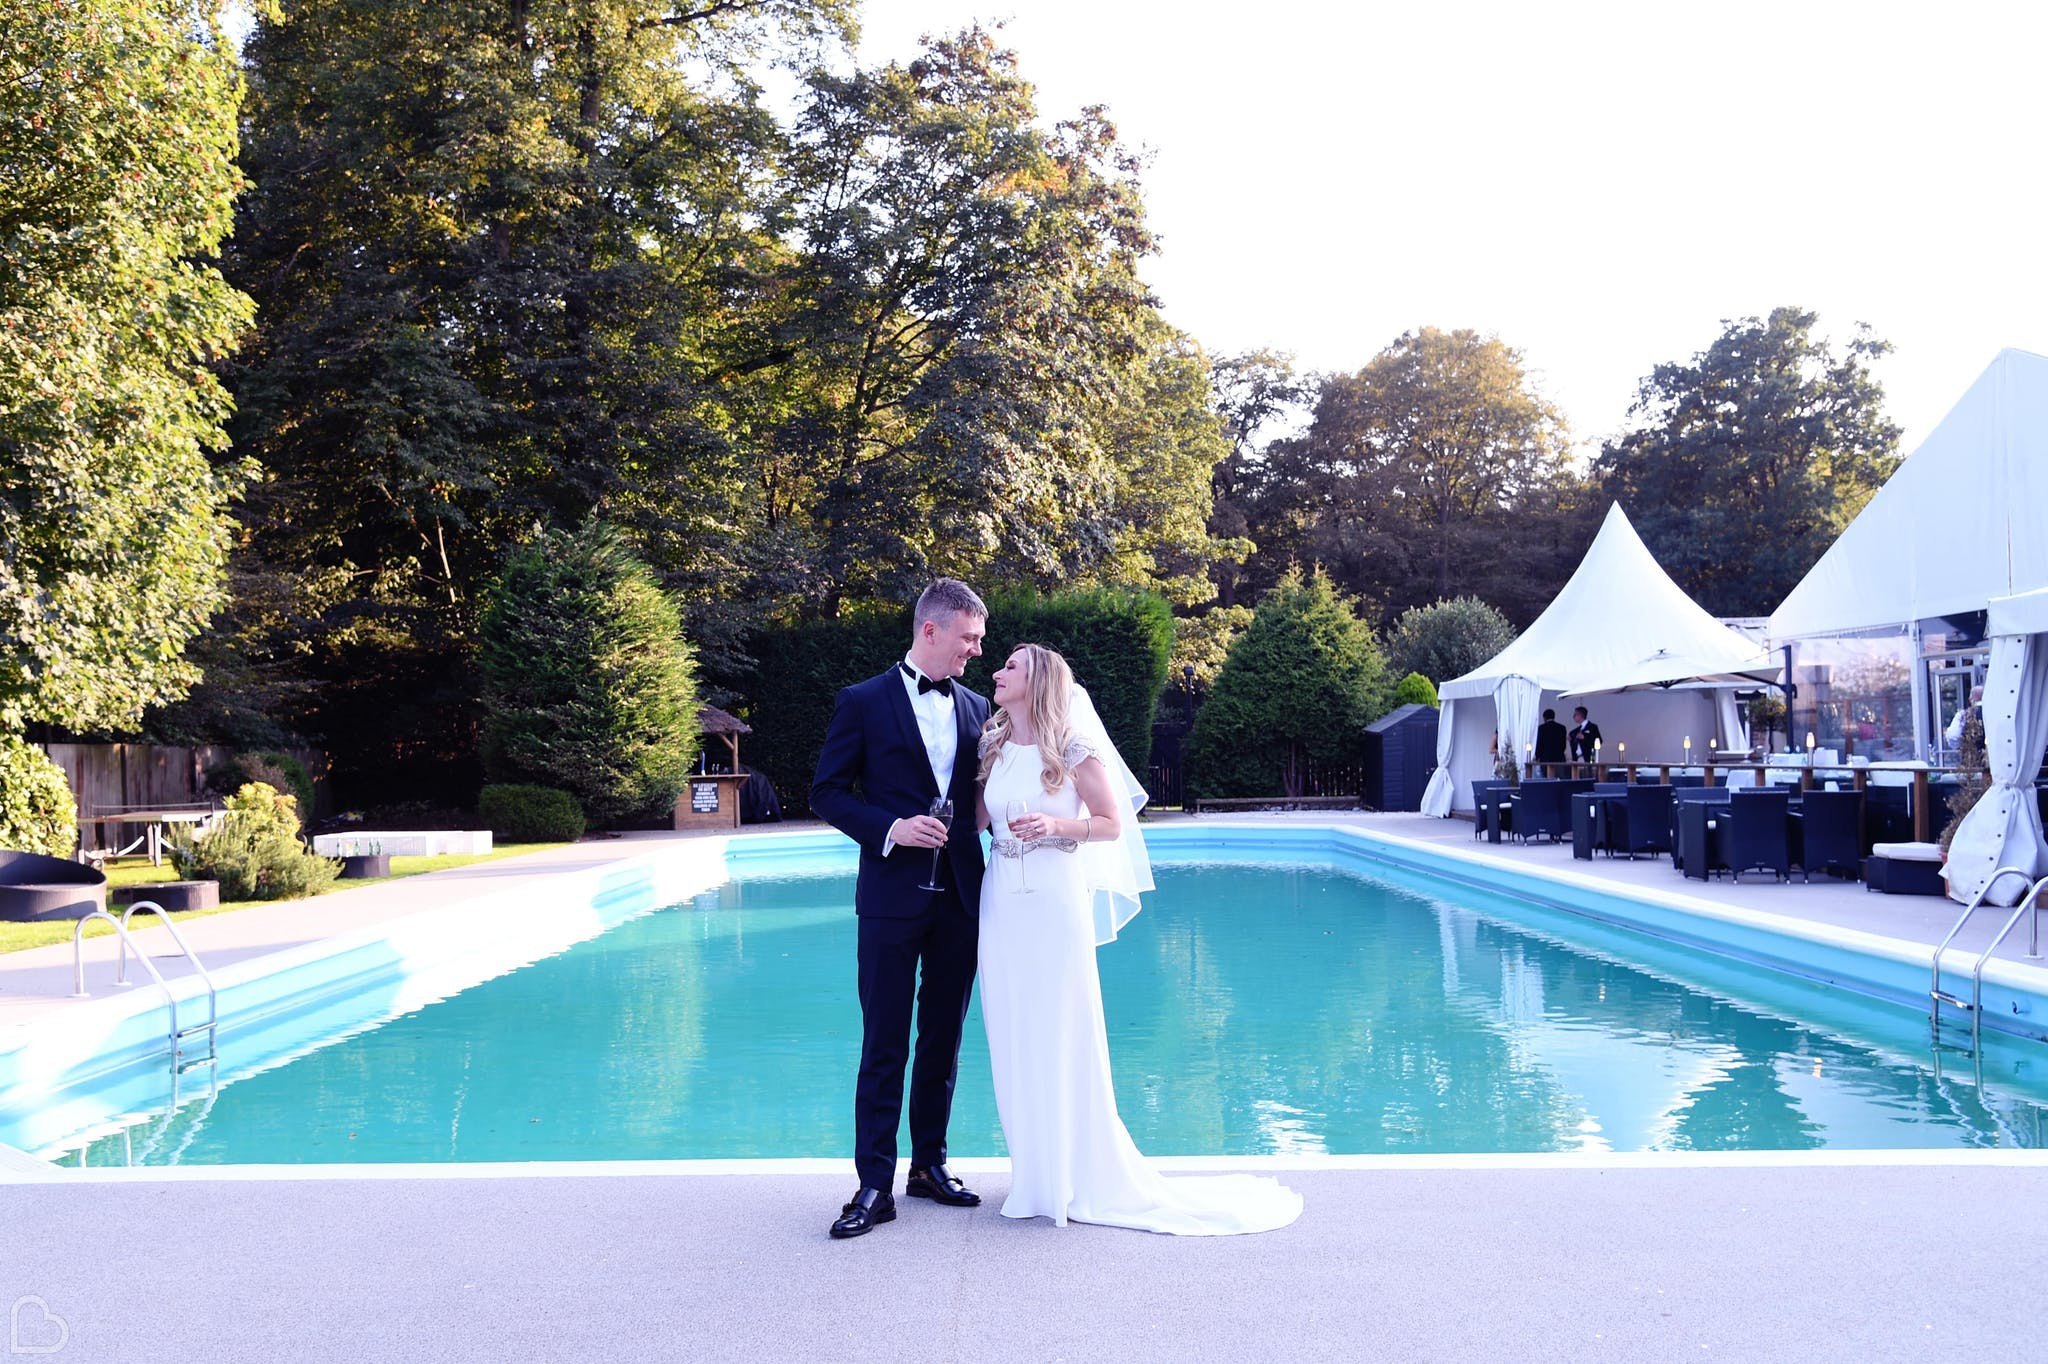 newlyweds pose in front of the pool and the kings oak hotel